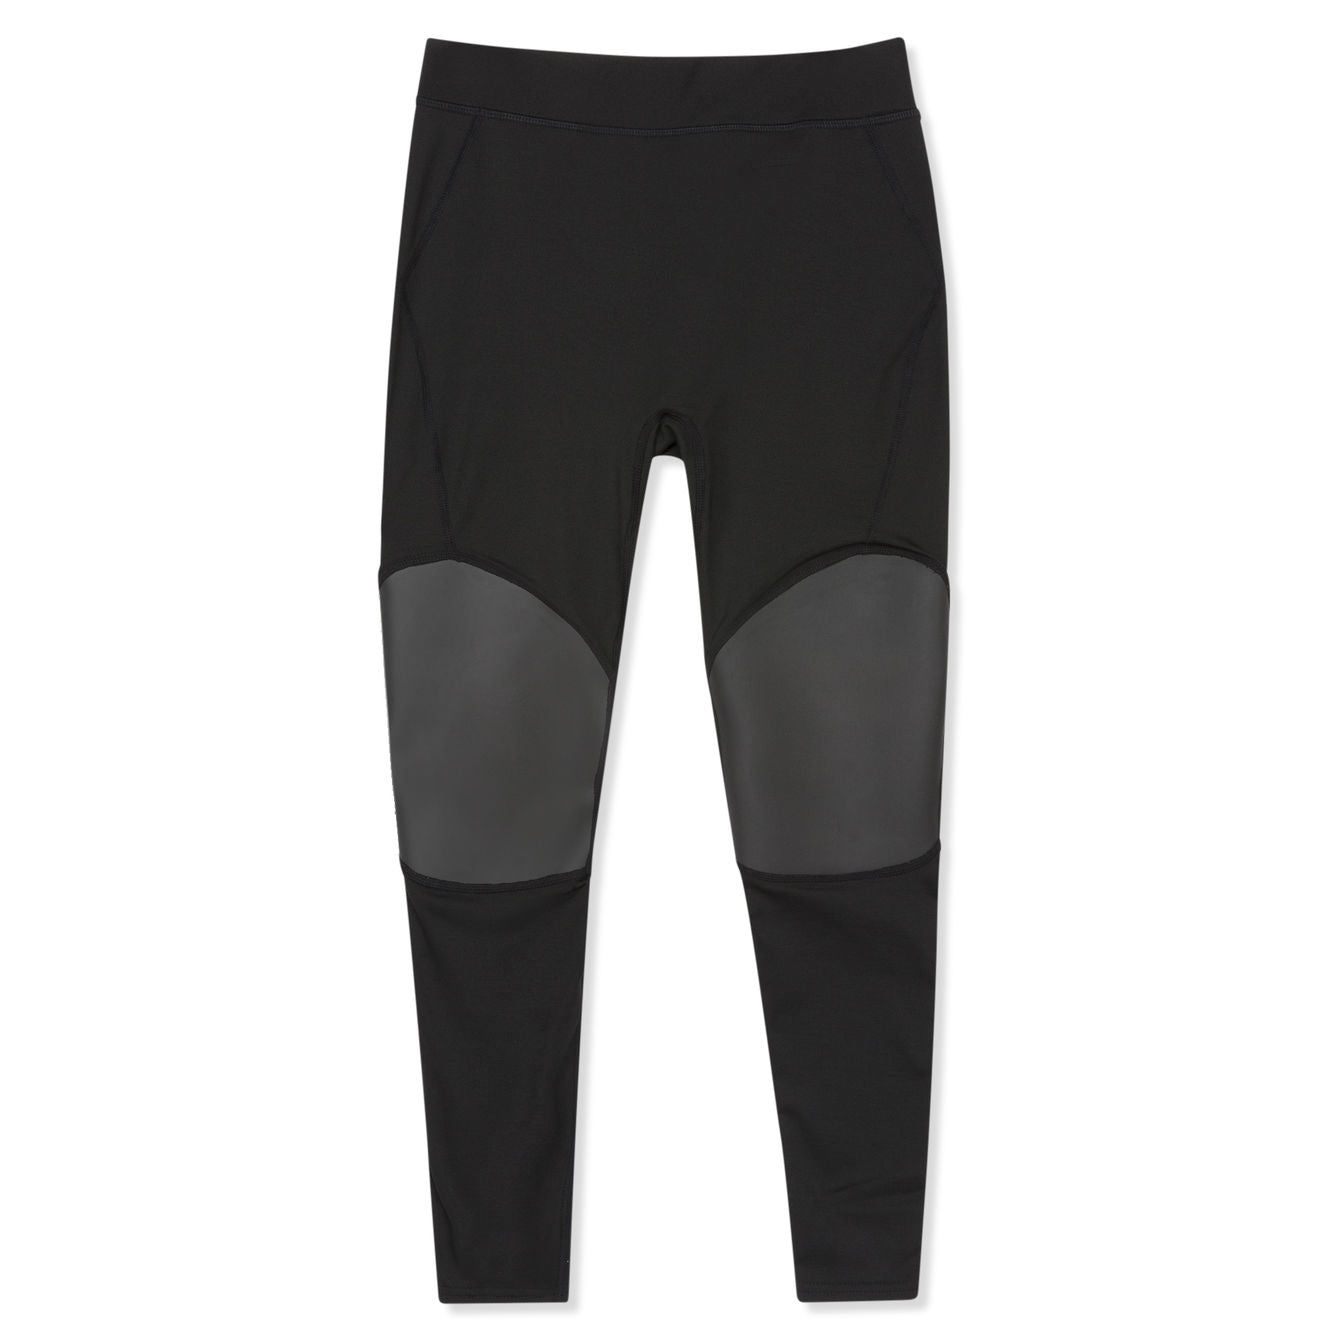 YOUTH CHAMPIONSHIP HYDROTHERMAL PANT